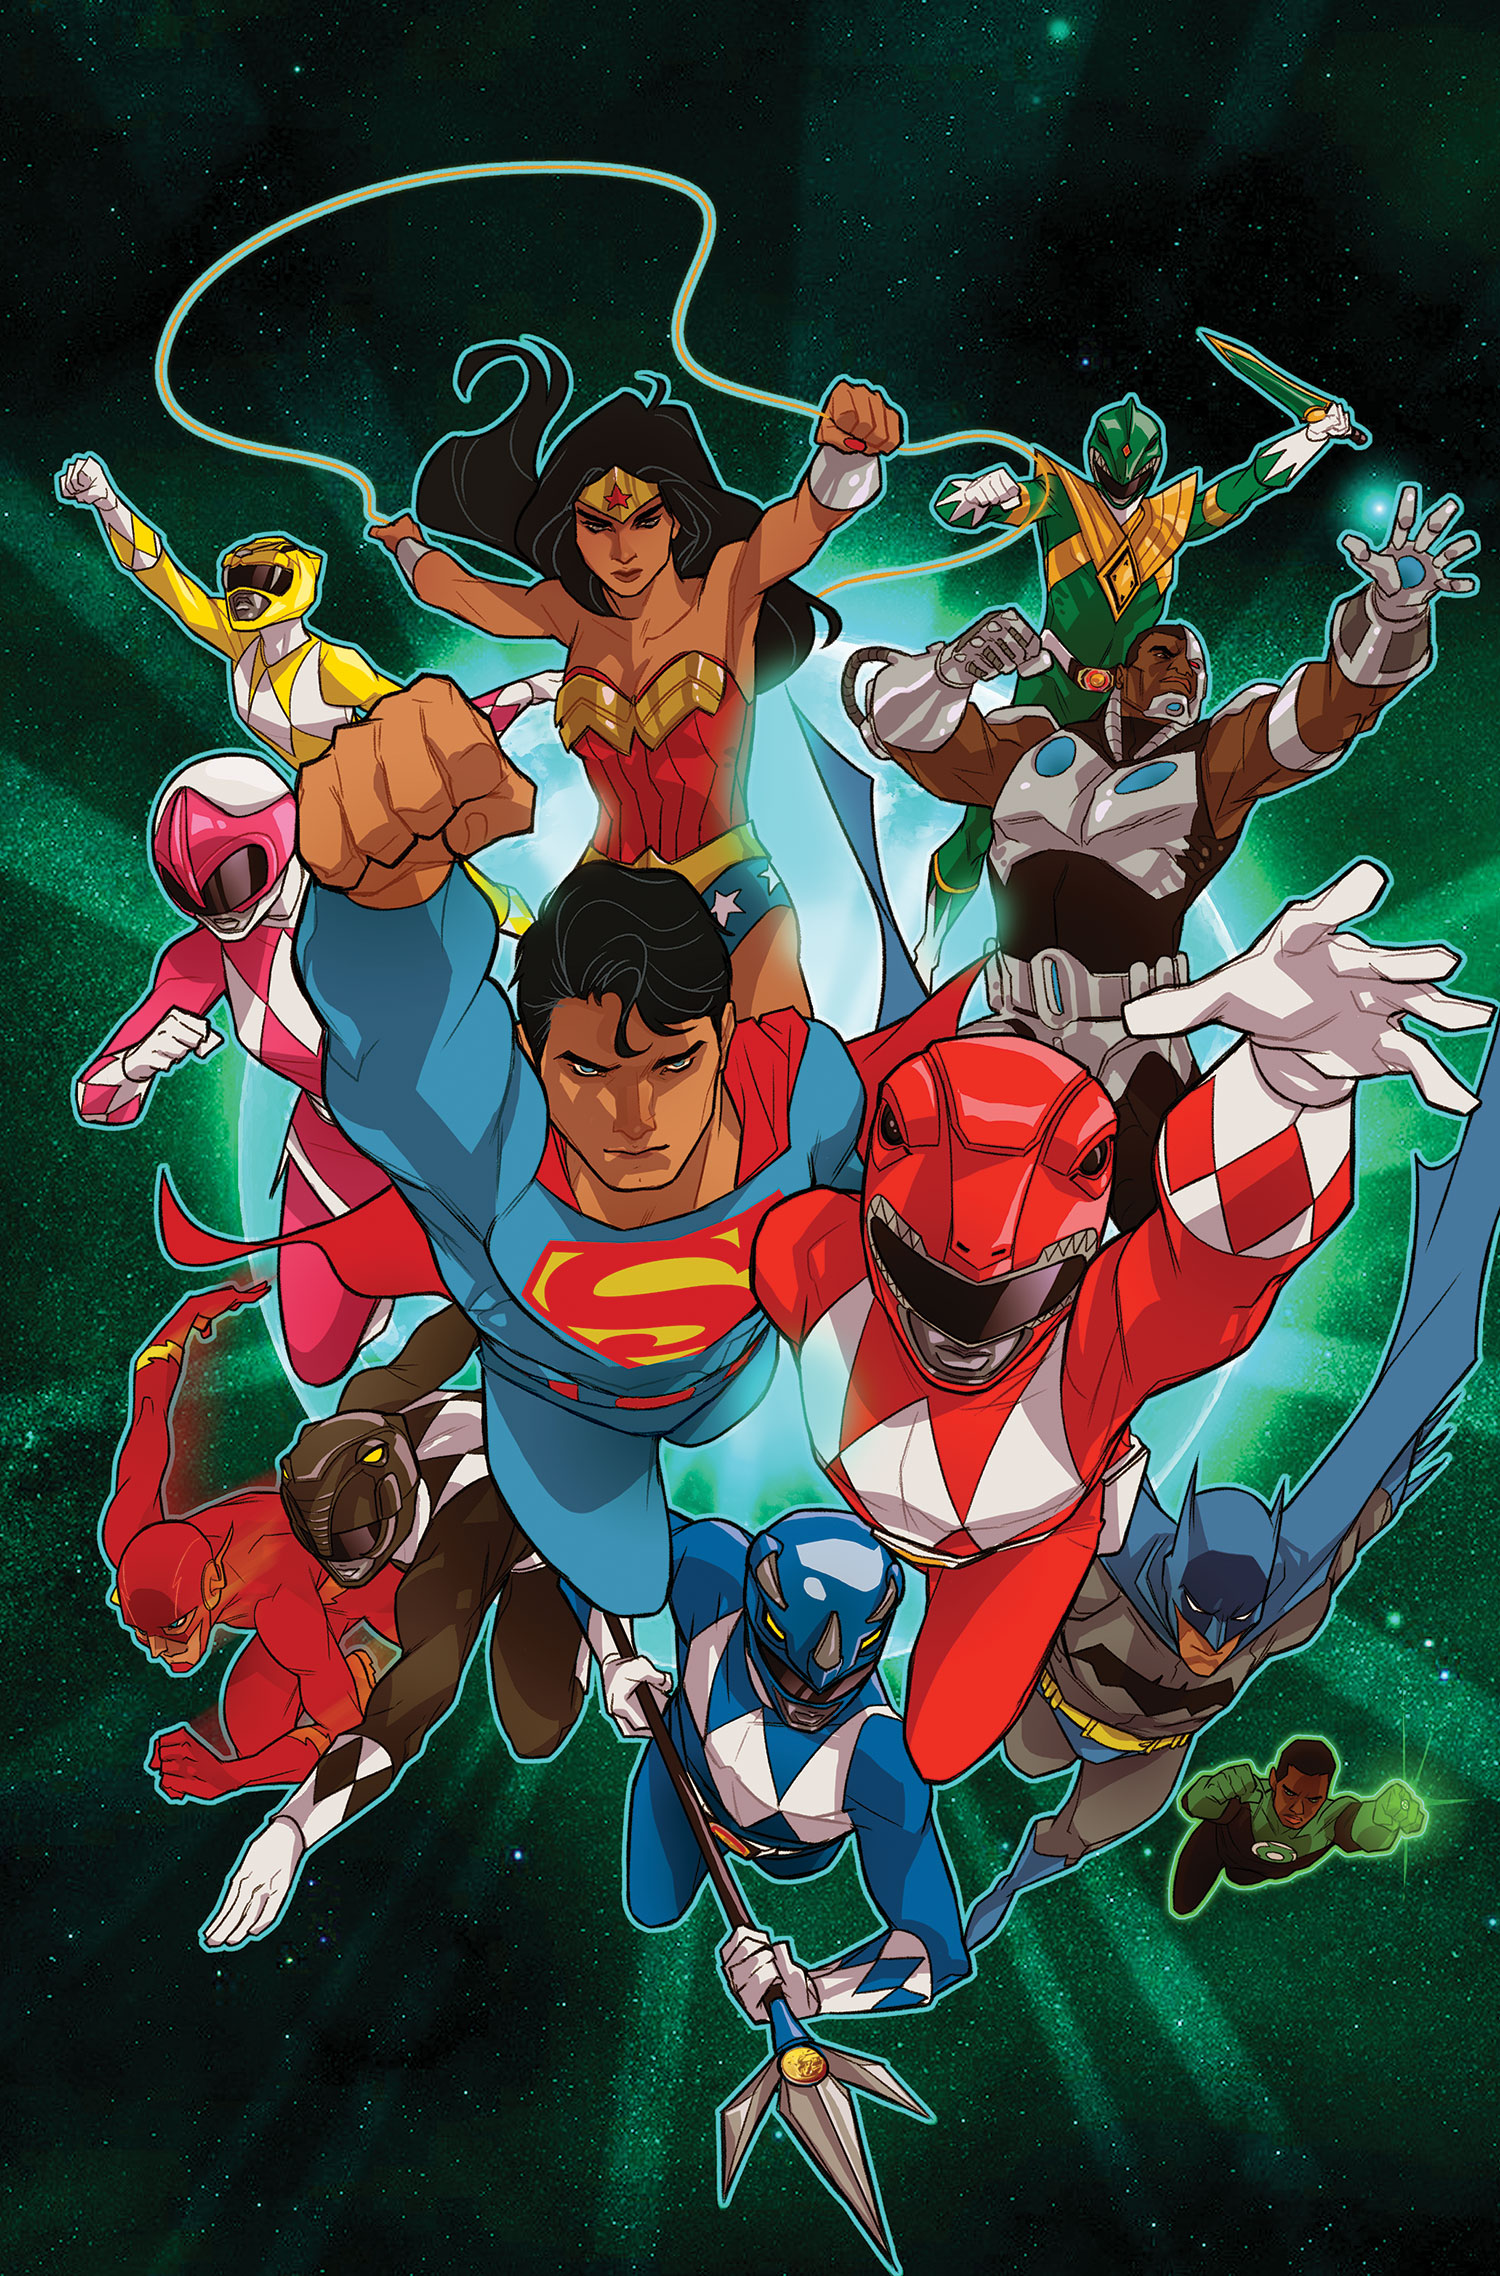 Justice League Power Rangers Vol 1 2 Textless.jpg